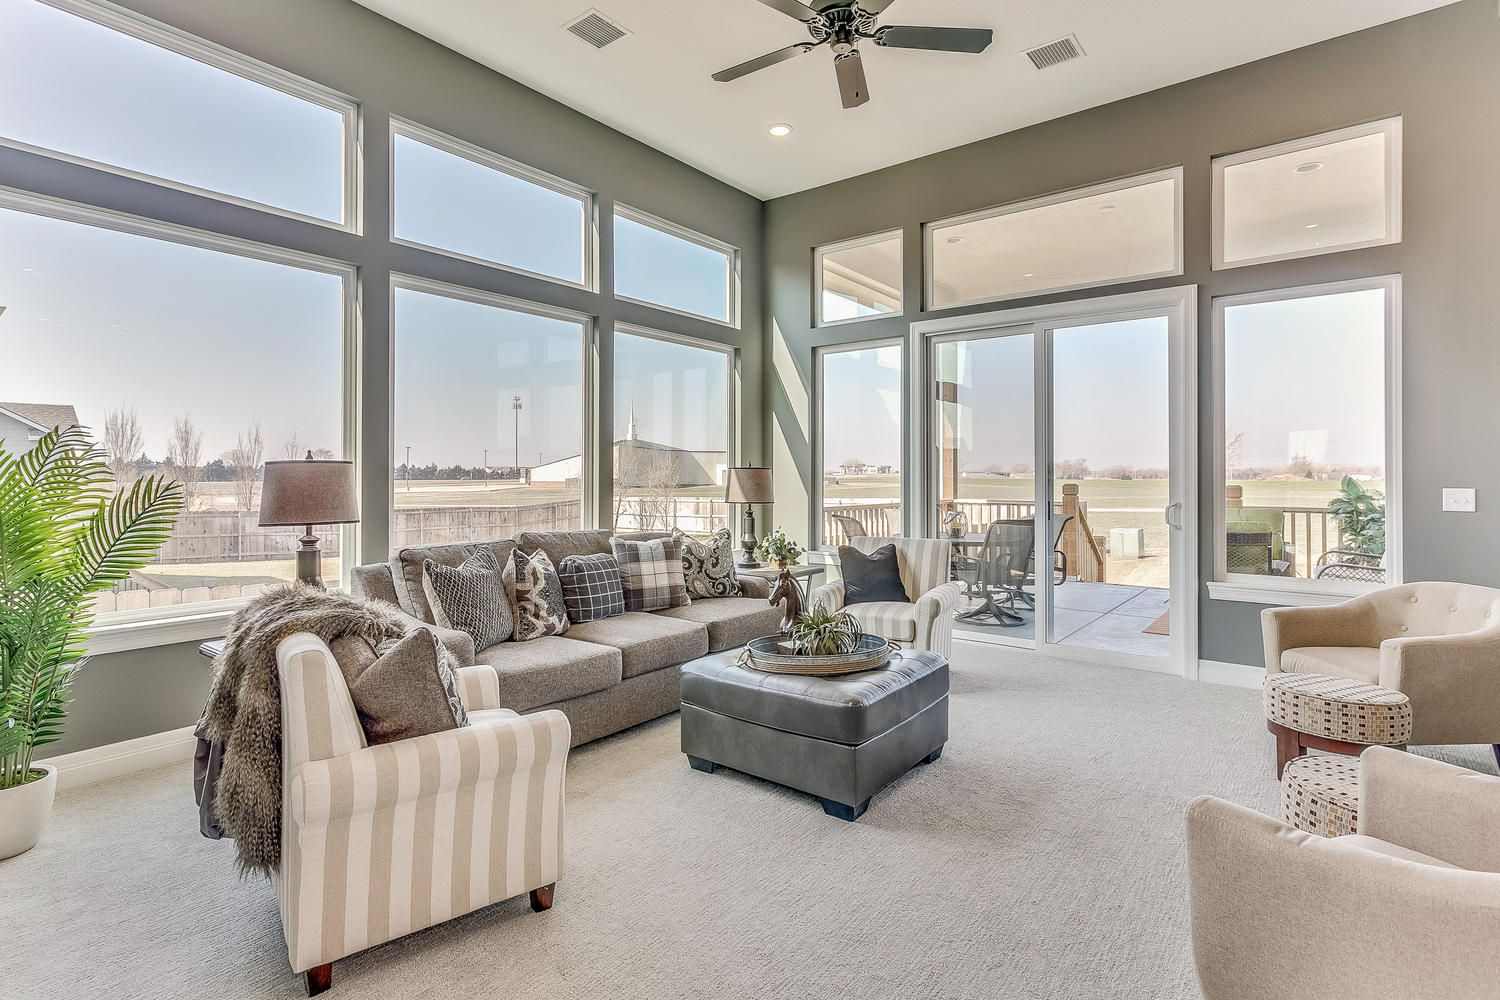 FLEX plan layout with extra large family room by Robl ...